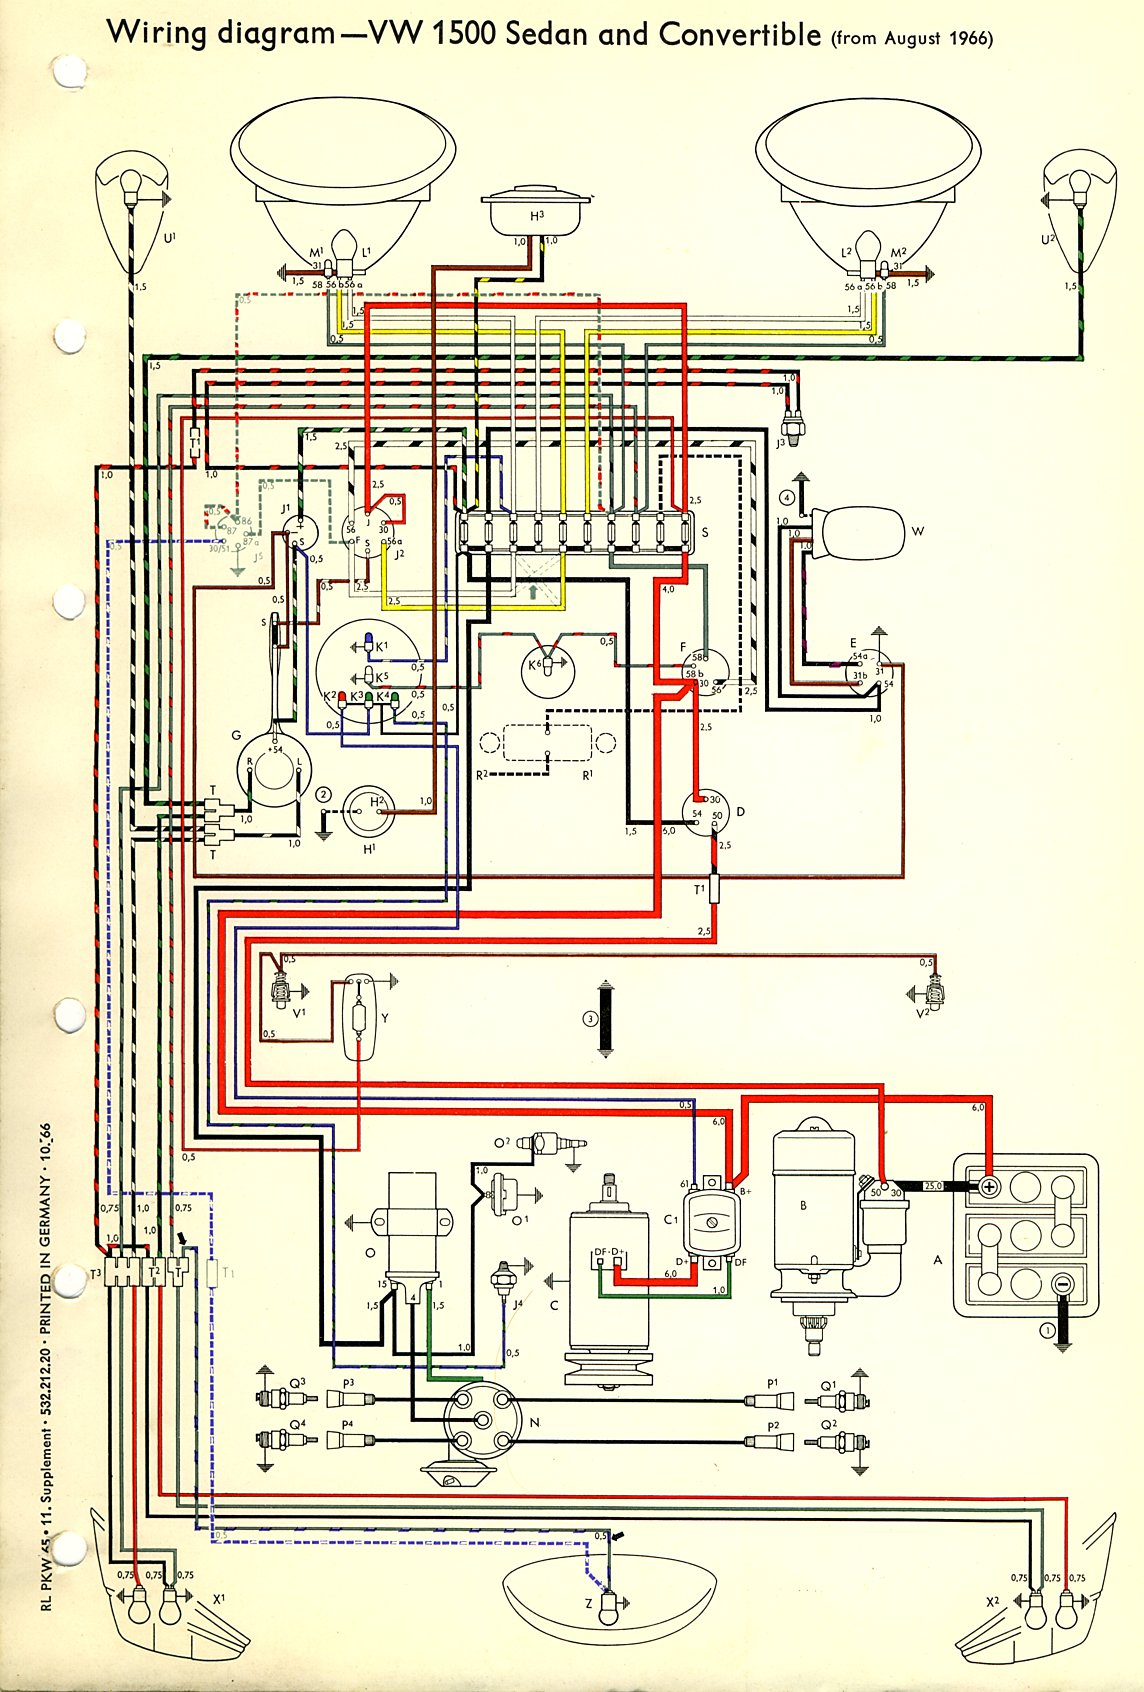 bug_67 1949 vw wiring diagram on 1949 download wirning diagrams vw buggy wiring diagram at soozxer.org